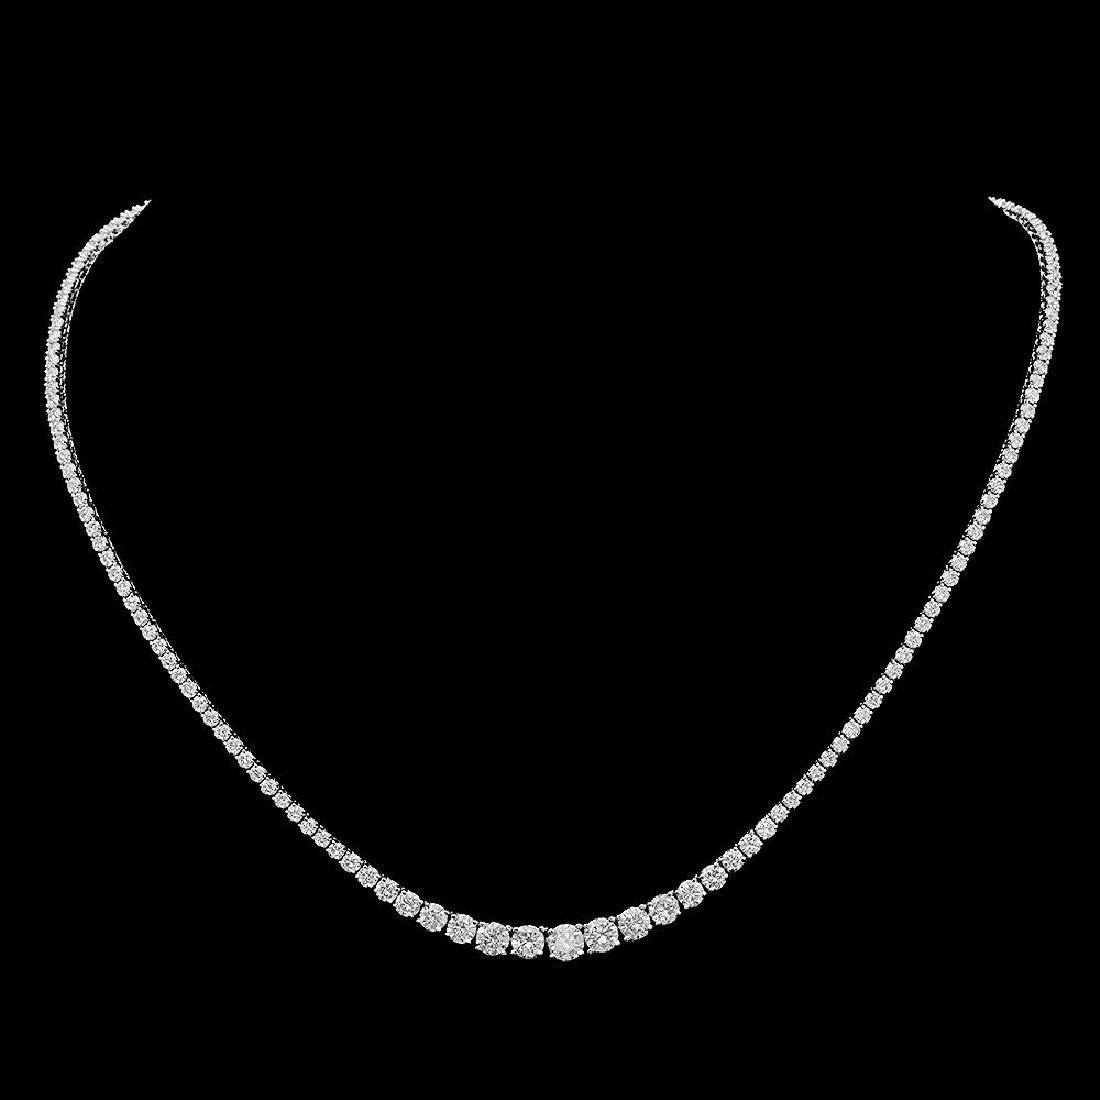 18K Gold 7.57ct Diamond Necklace